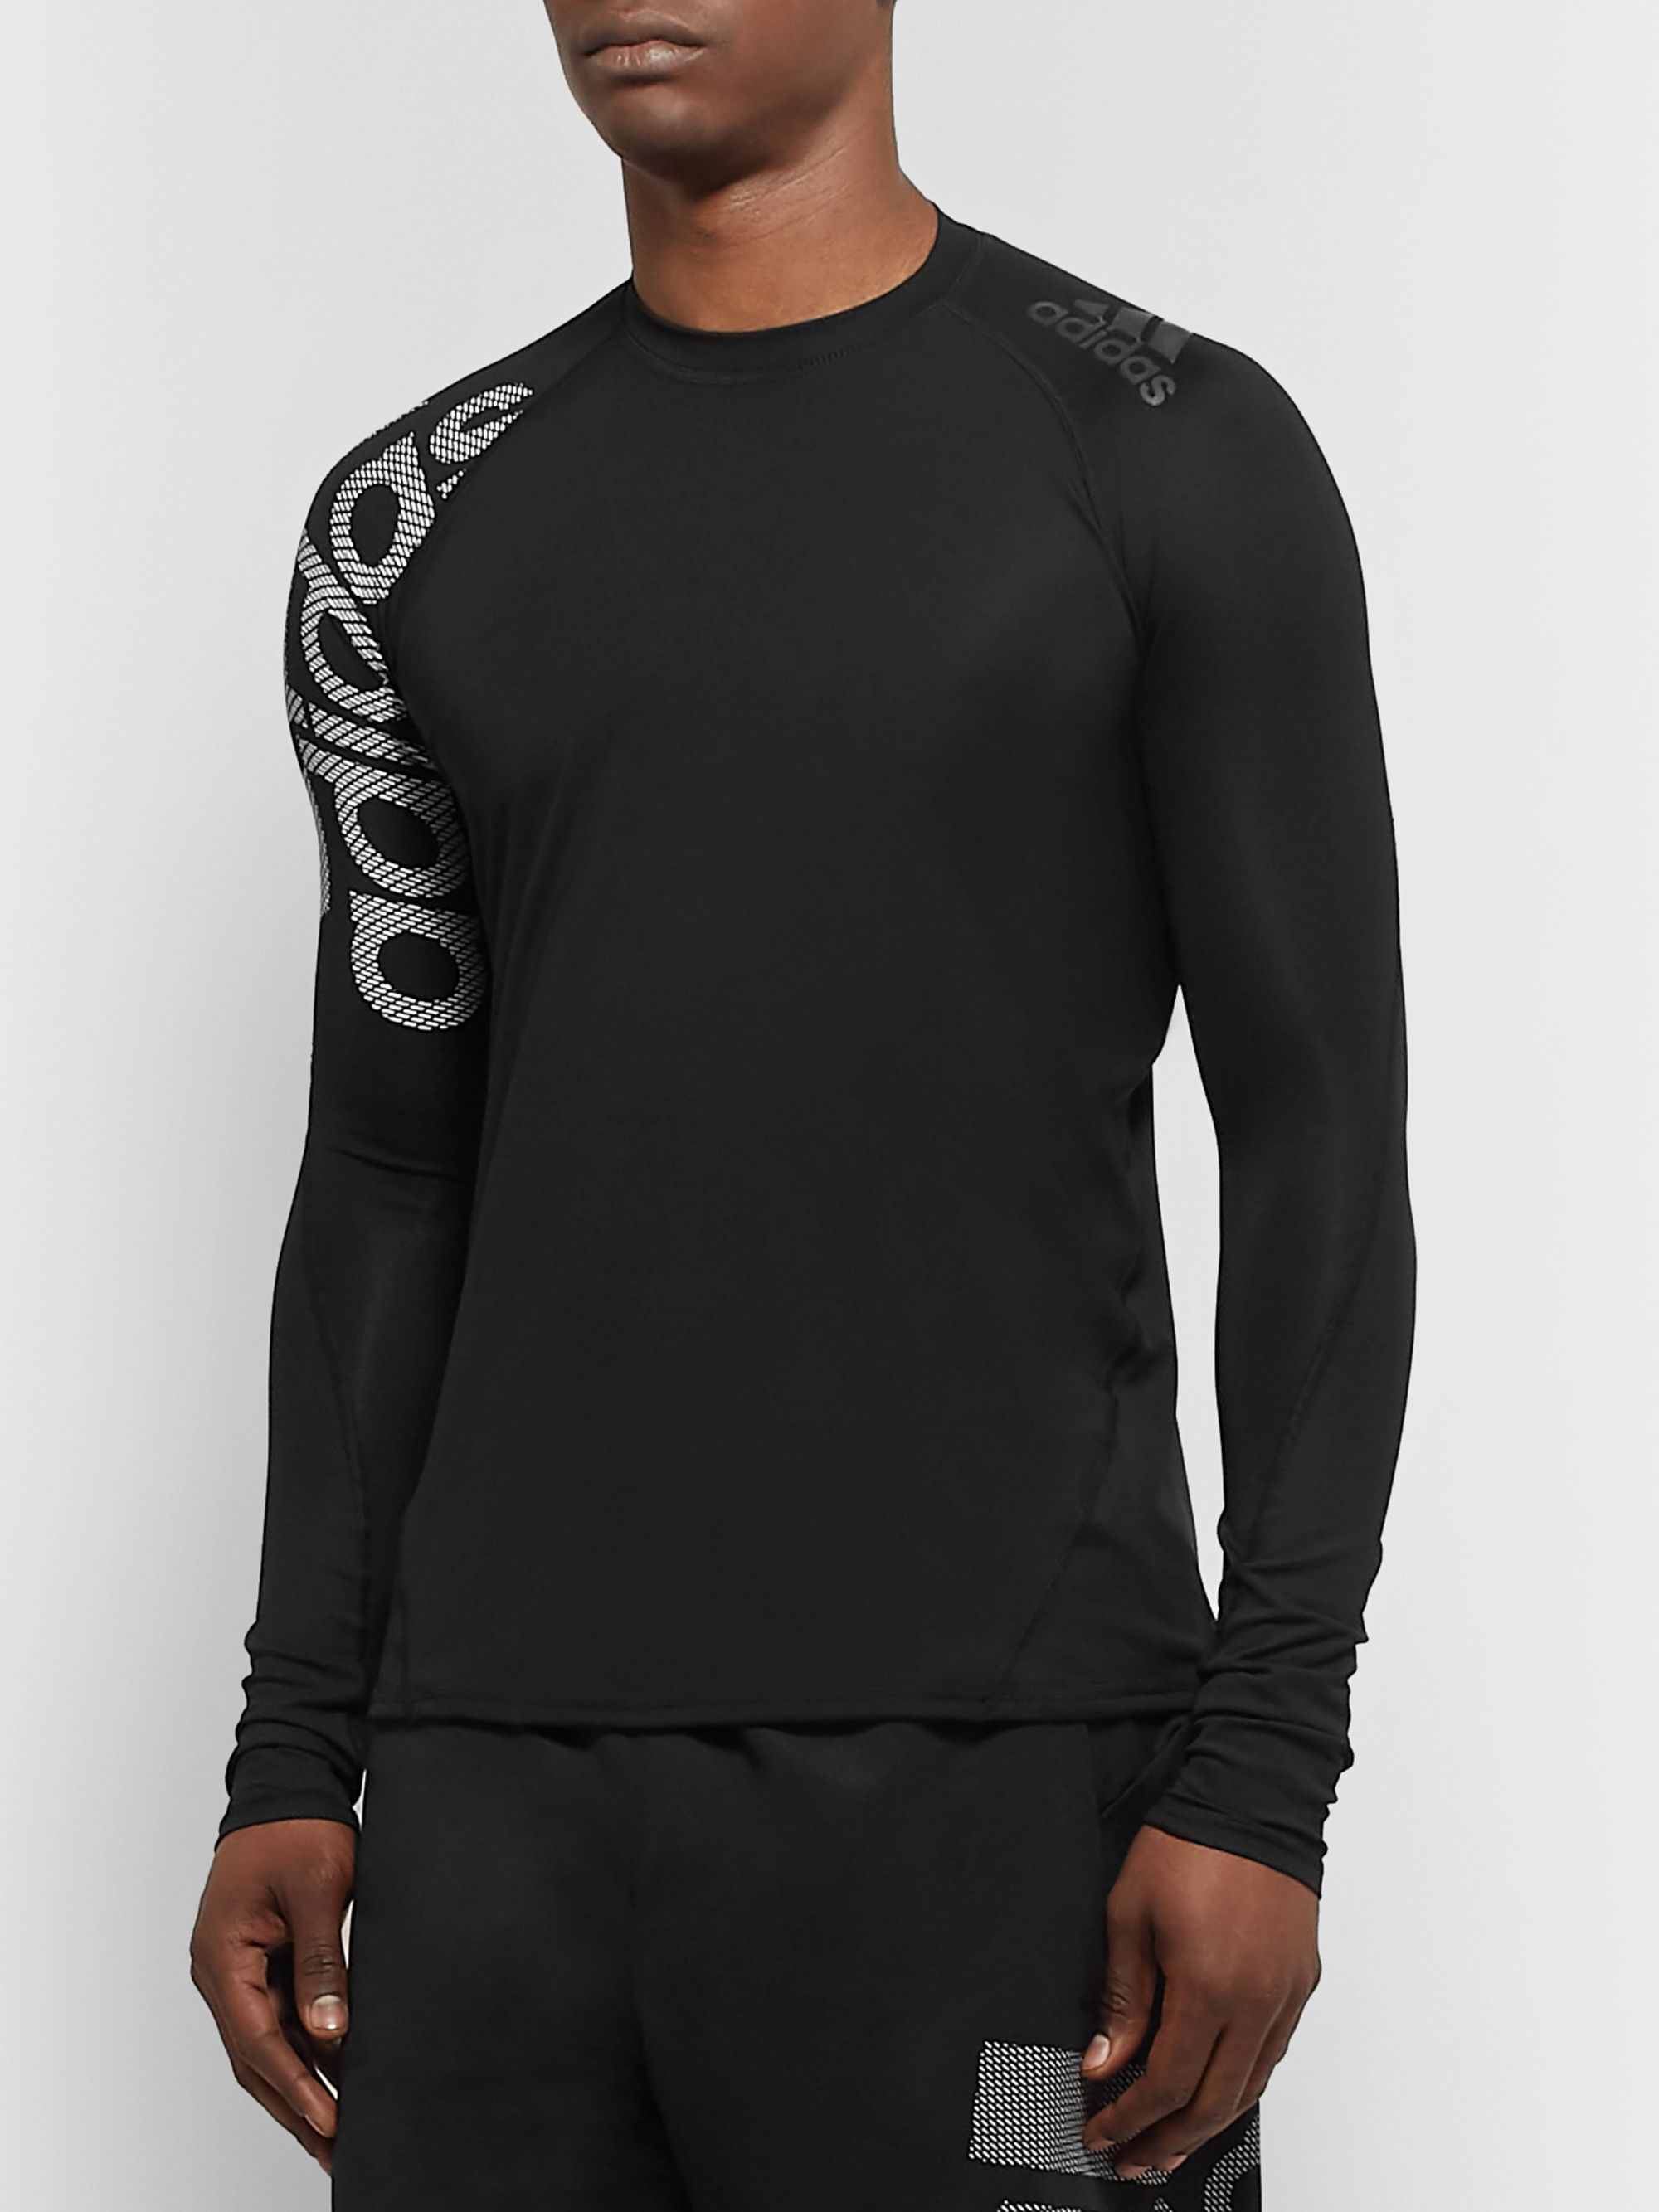 Adidas Sport Alphaskin Badge of Sport Climacool and Mesh Compression T-Shirt